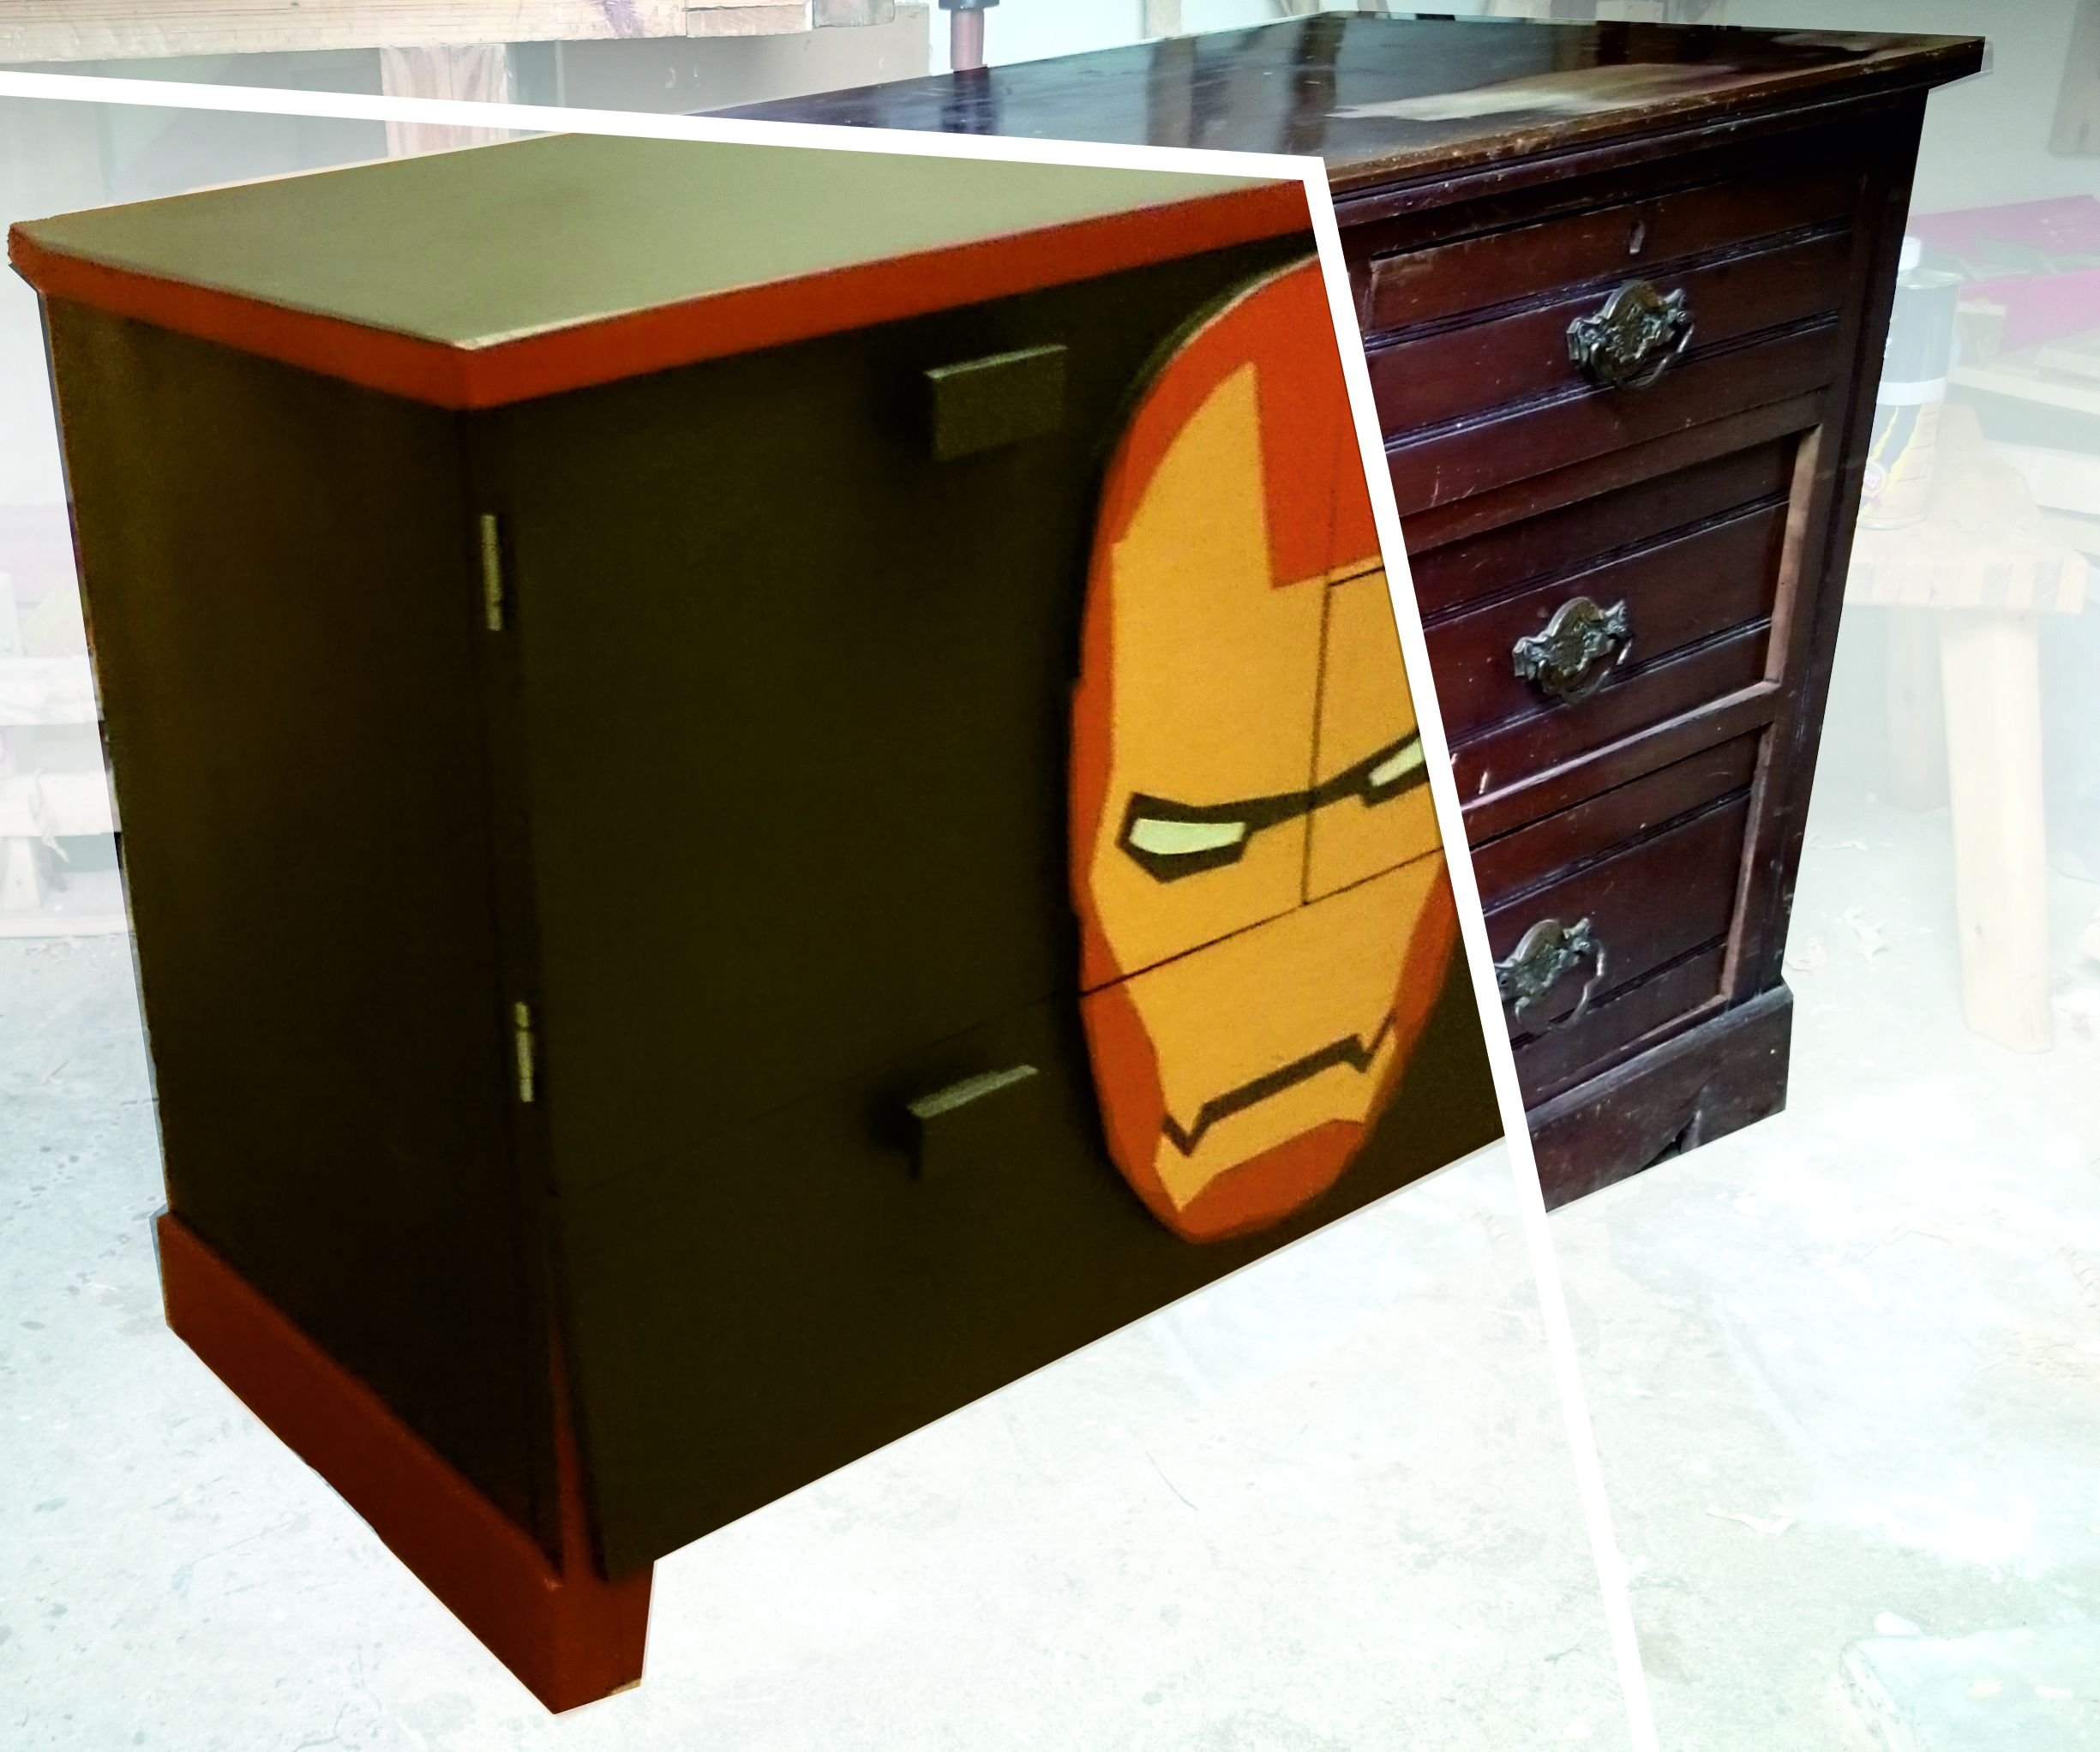 Iron Man Cabinet Upcycled From a Chest of Drawers